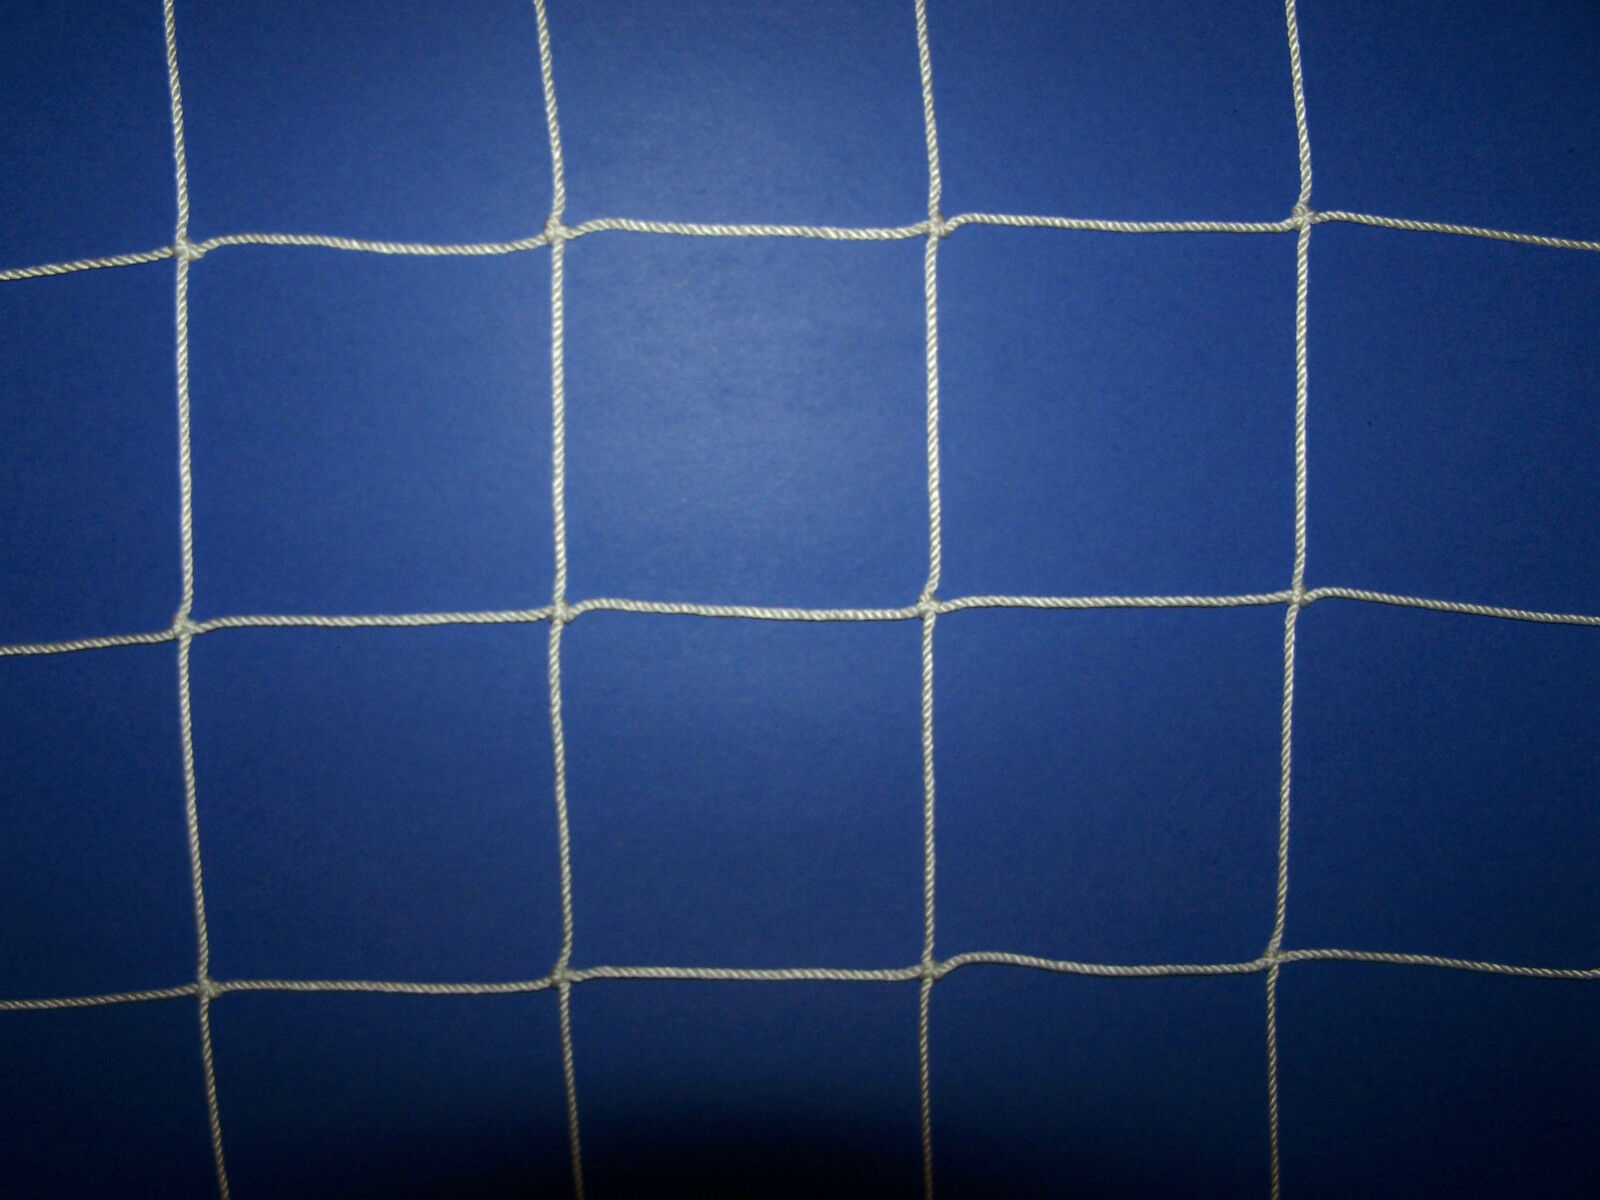 12' x 8' WHITE SQUARE MESH SOCCER IMPACT NET  4   VOLLEYBALL NETTING